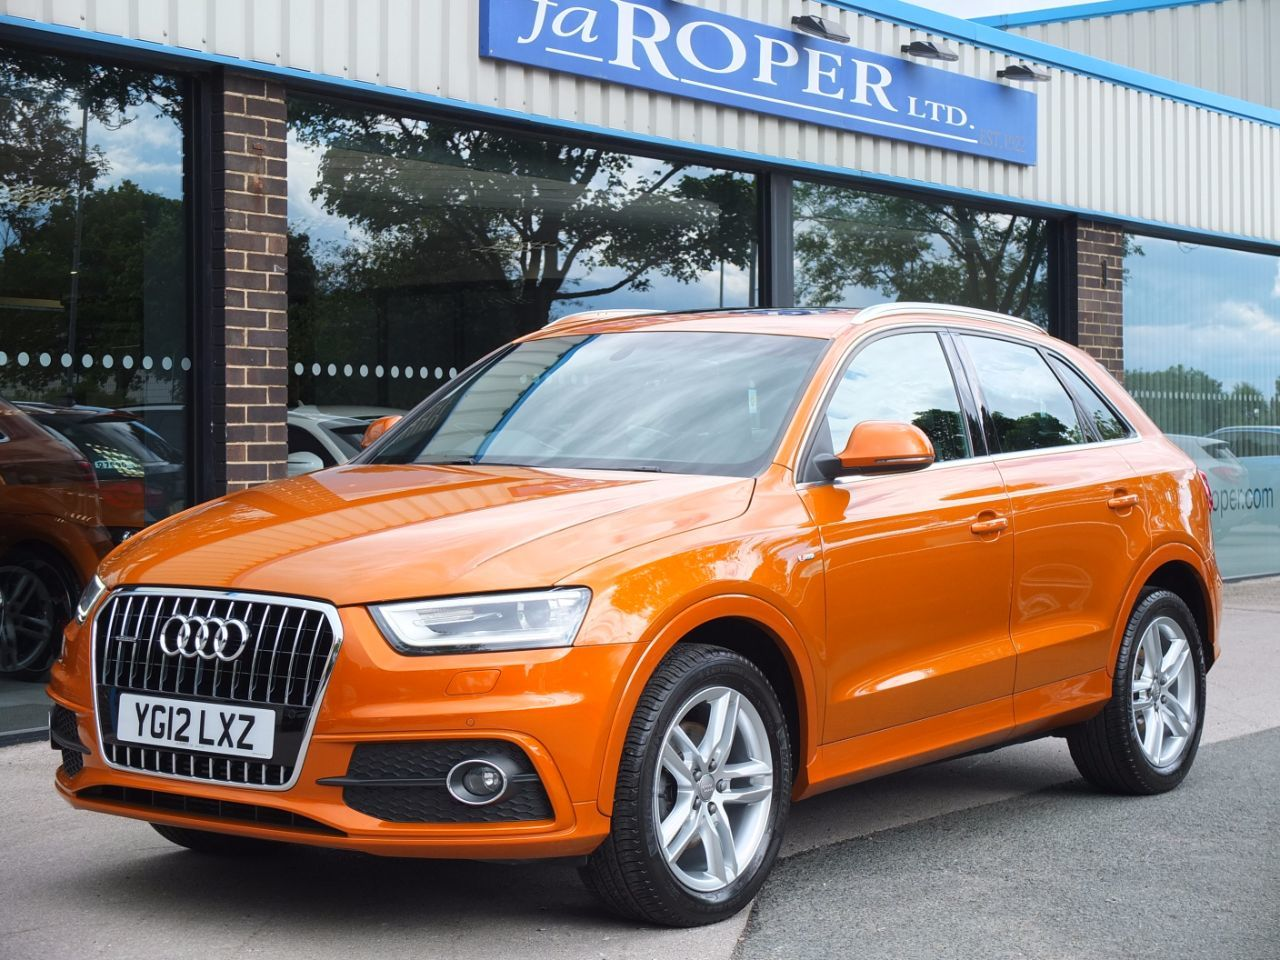 Audi Q3 2.0T FSI quattro S Line S Tronic 211ps Estate Petrol Samoa Orange MetallicAudi Q3 2.0T FSI quattro S Line S Tronic 211ps Estate Petrol Samoa Orange Metallic at fa Roper Ltd Bradford